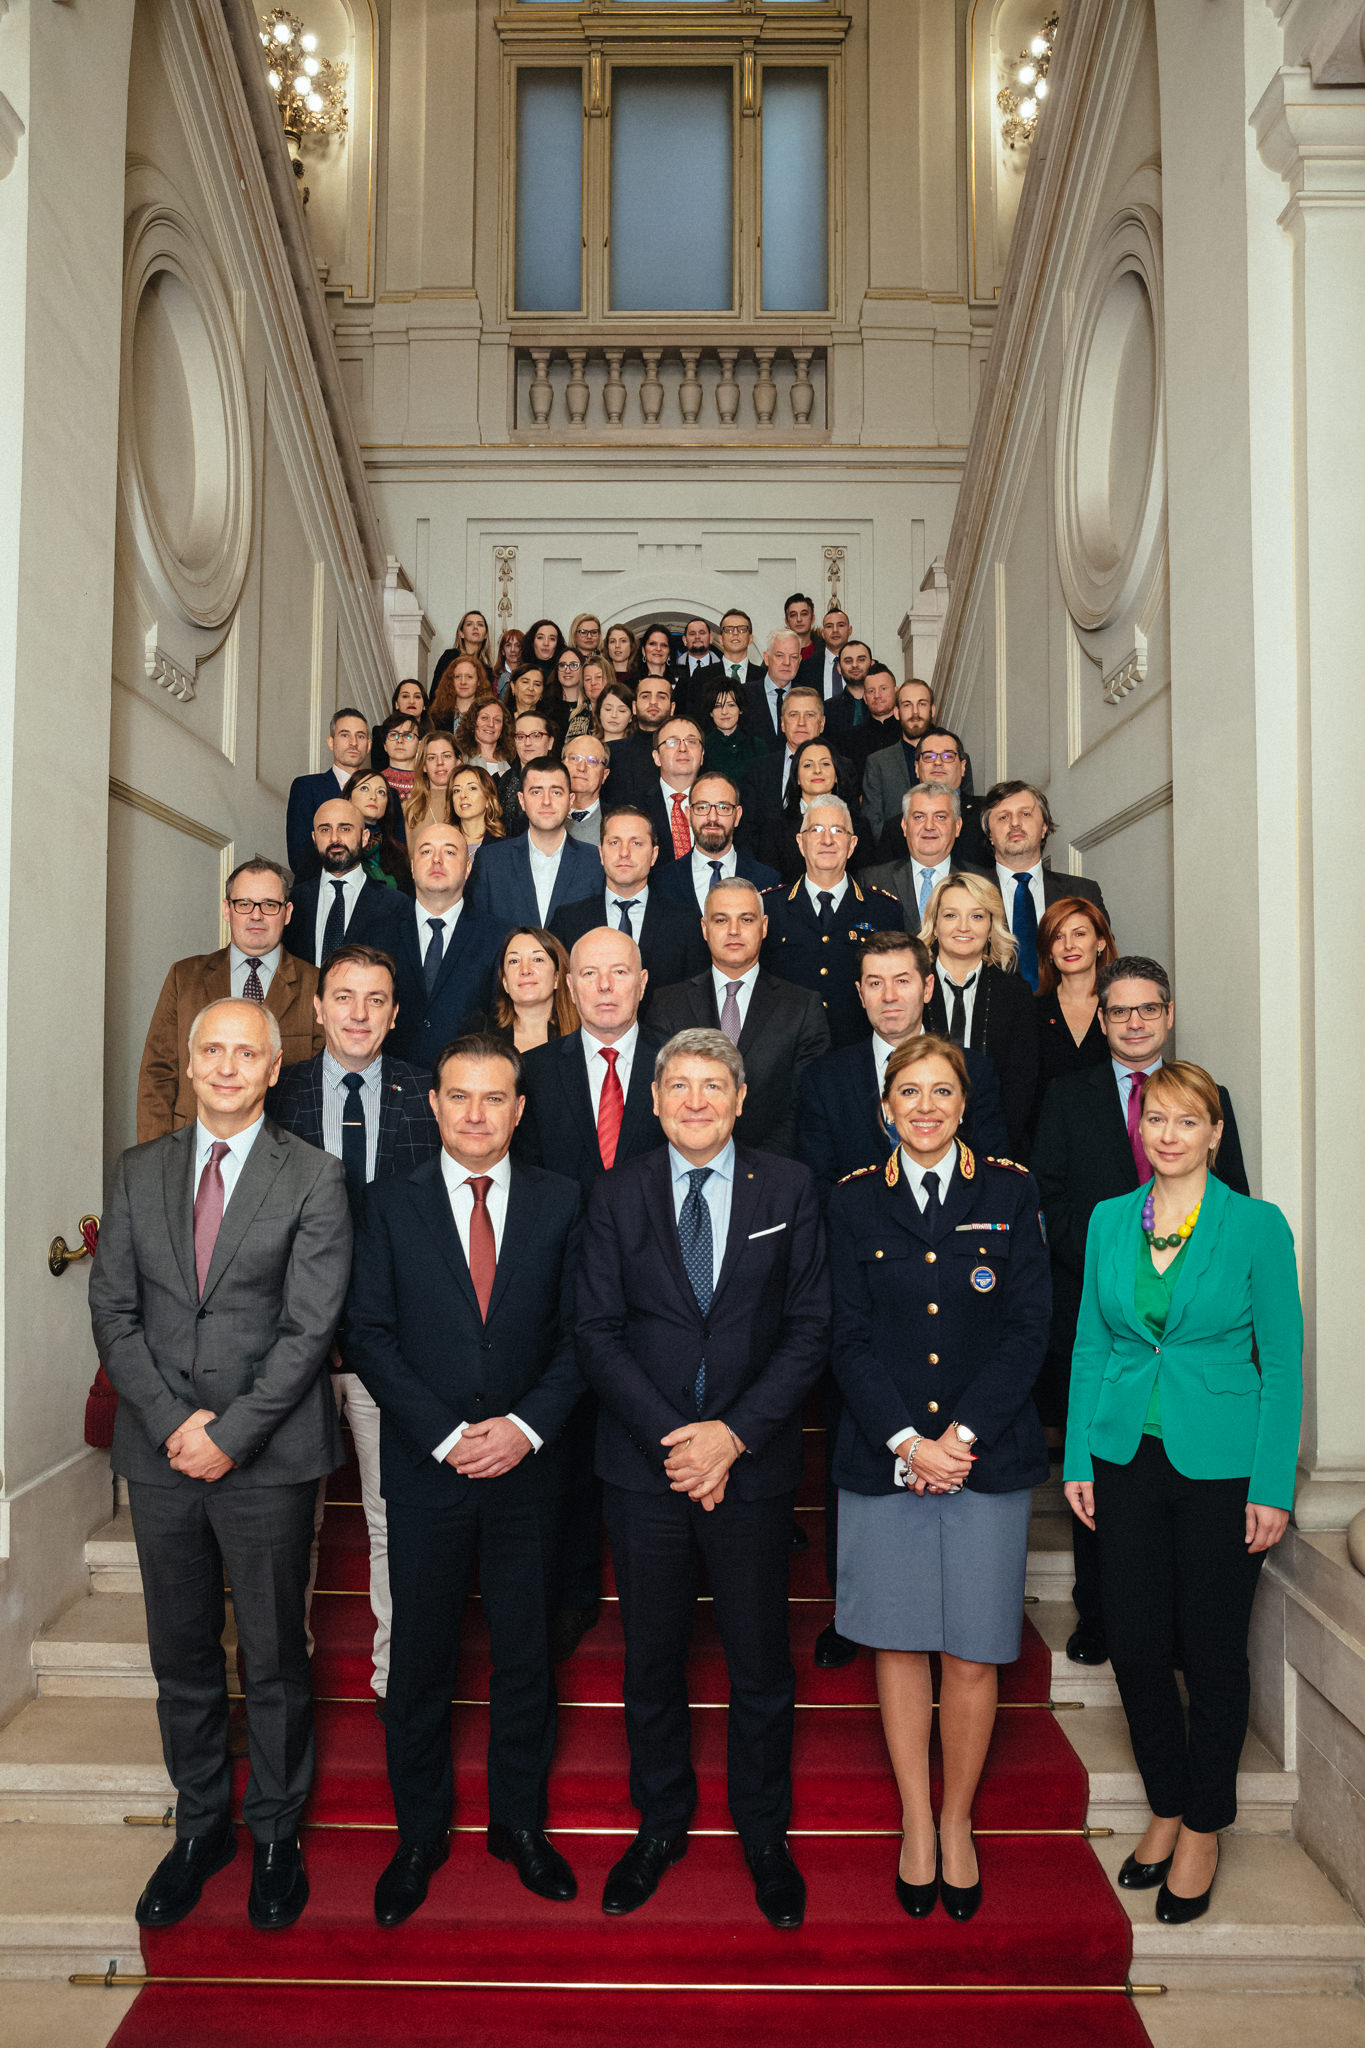 Participants of the Regional Response to Security Challenges in South East Europe conference, held in Trieste on 5 December 2019 (Photo: RCC/Matej Kolakovic)